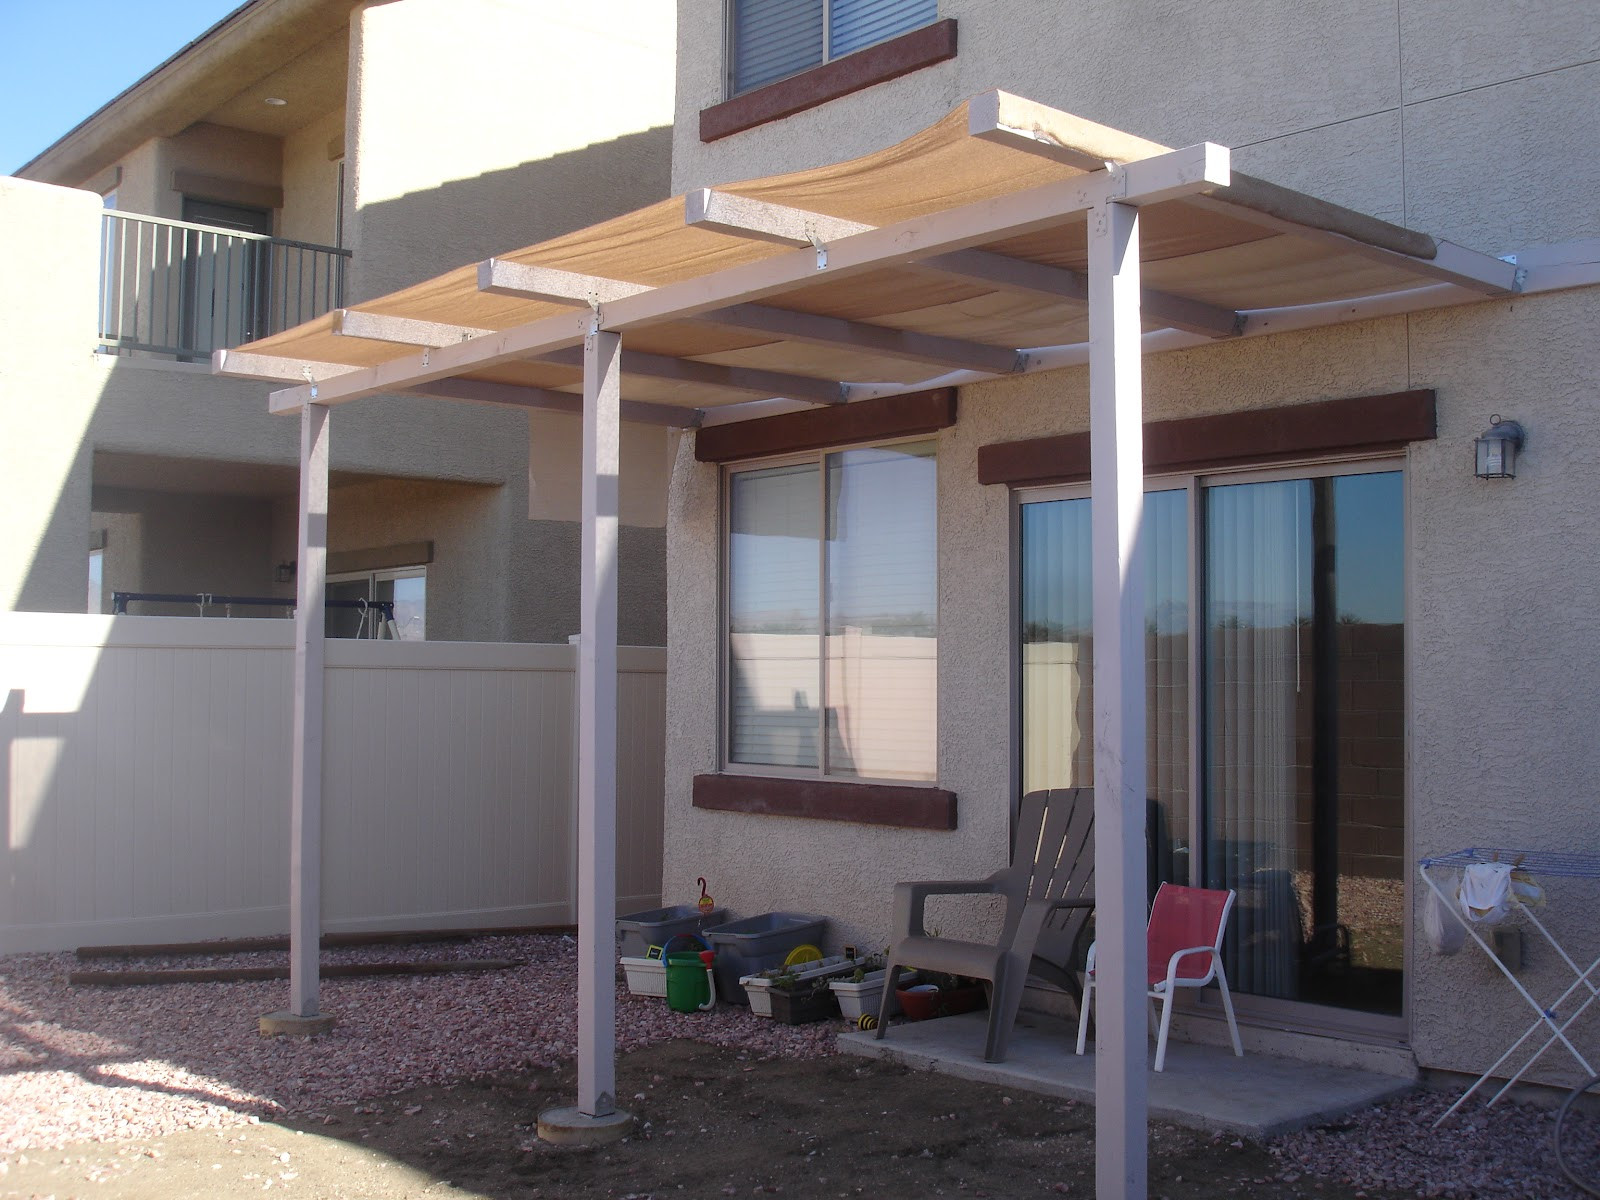 Patio Cover Plans DIY  Alex Haralson Update Our DIY Patio Cover